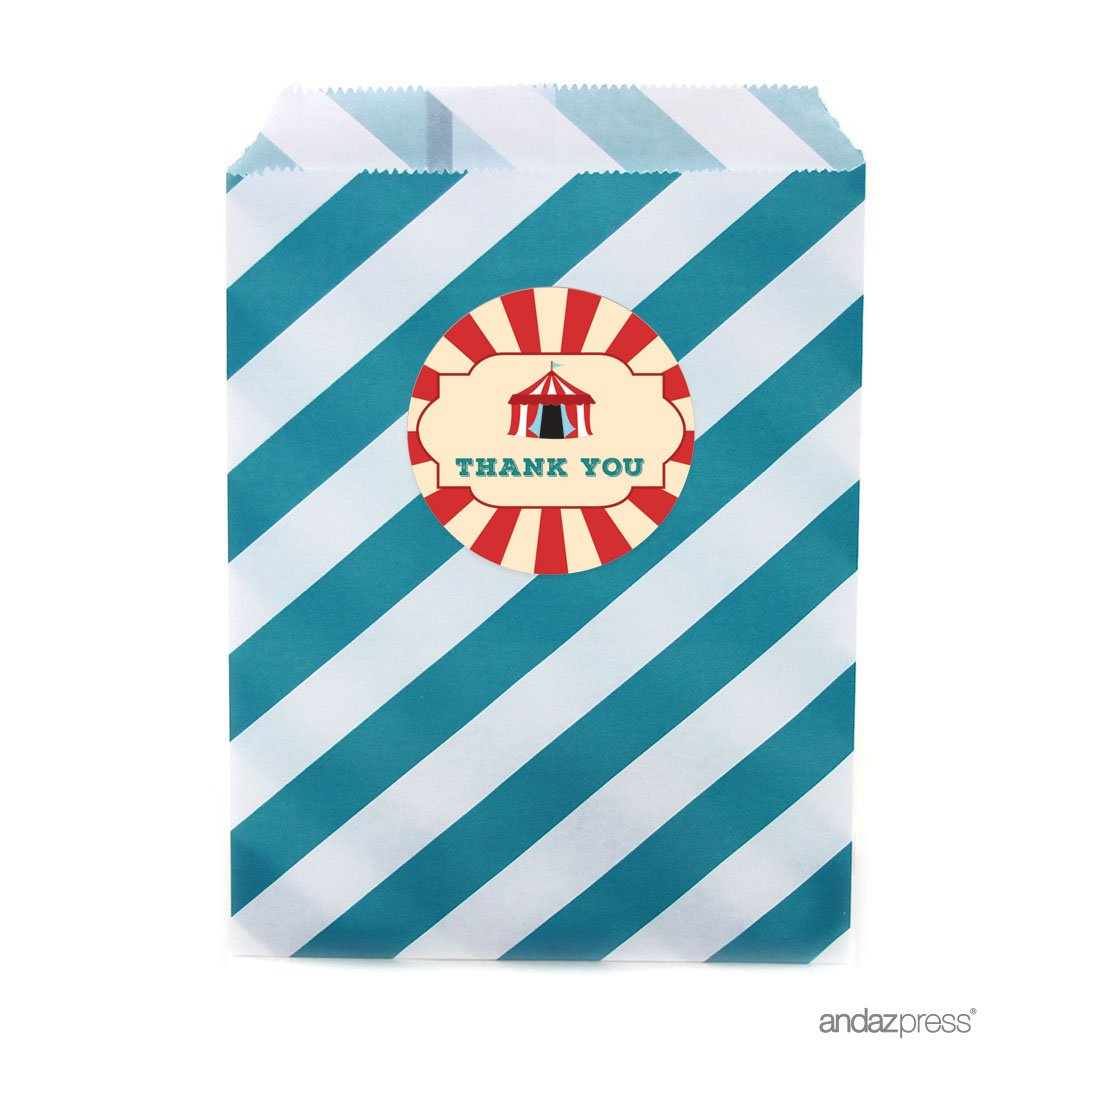 Andaz Press Carnival Circus Birthday Collection Cupcake Topper DIY Party Favors Kit 20-Pack